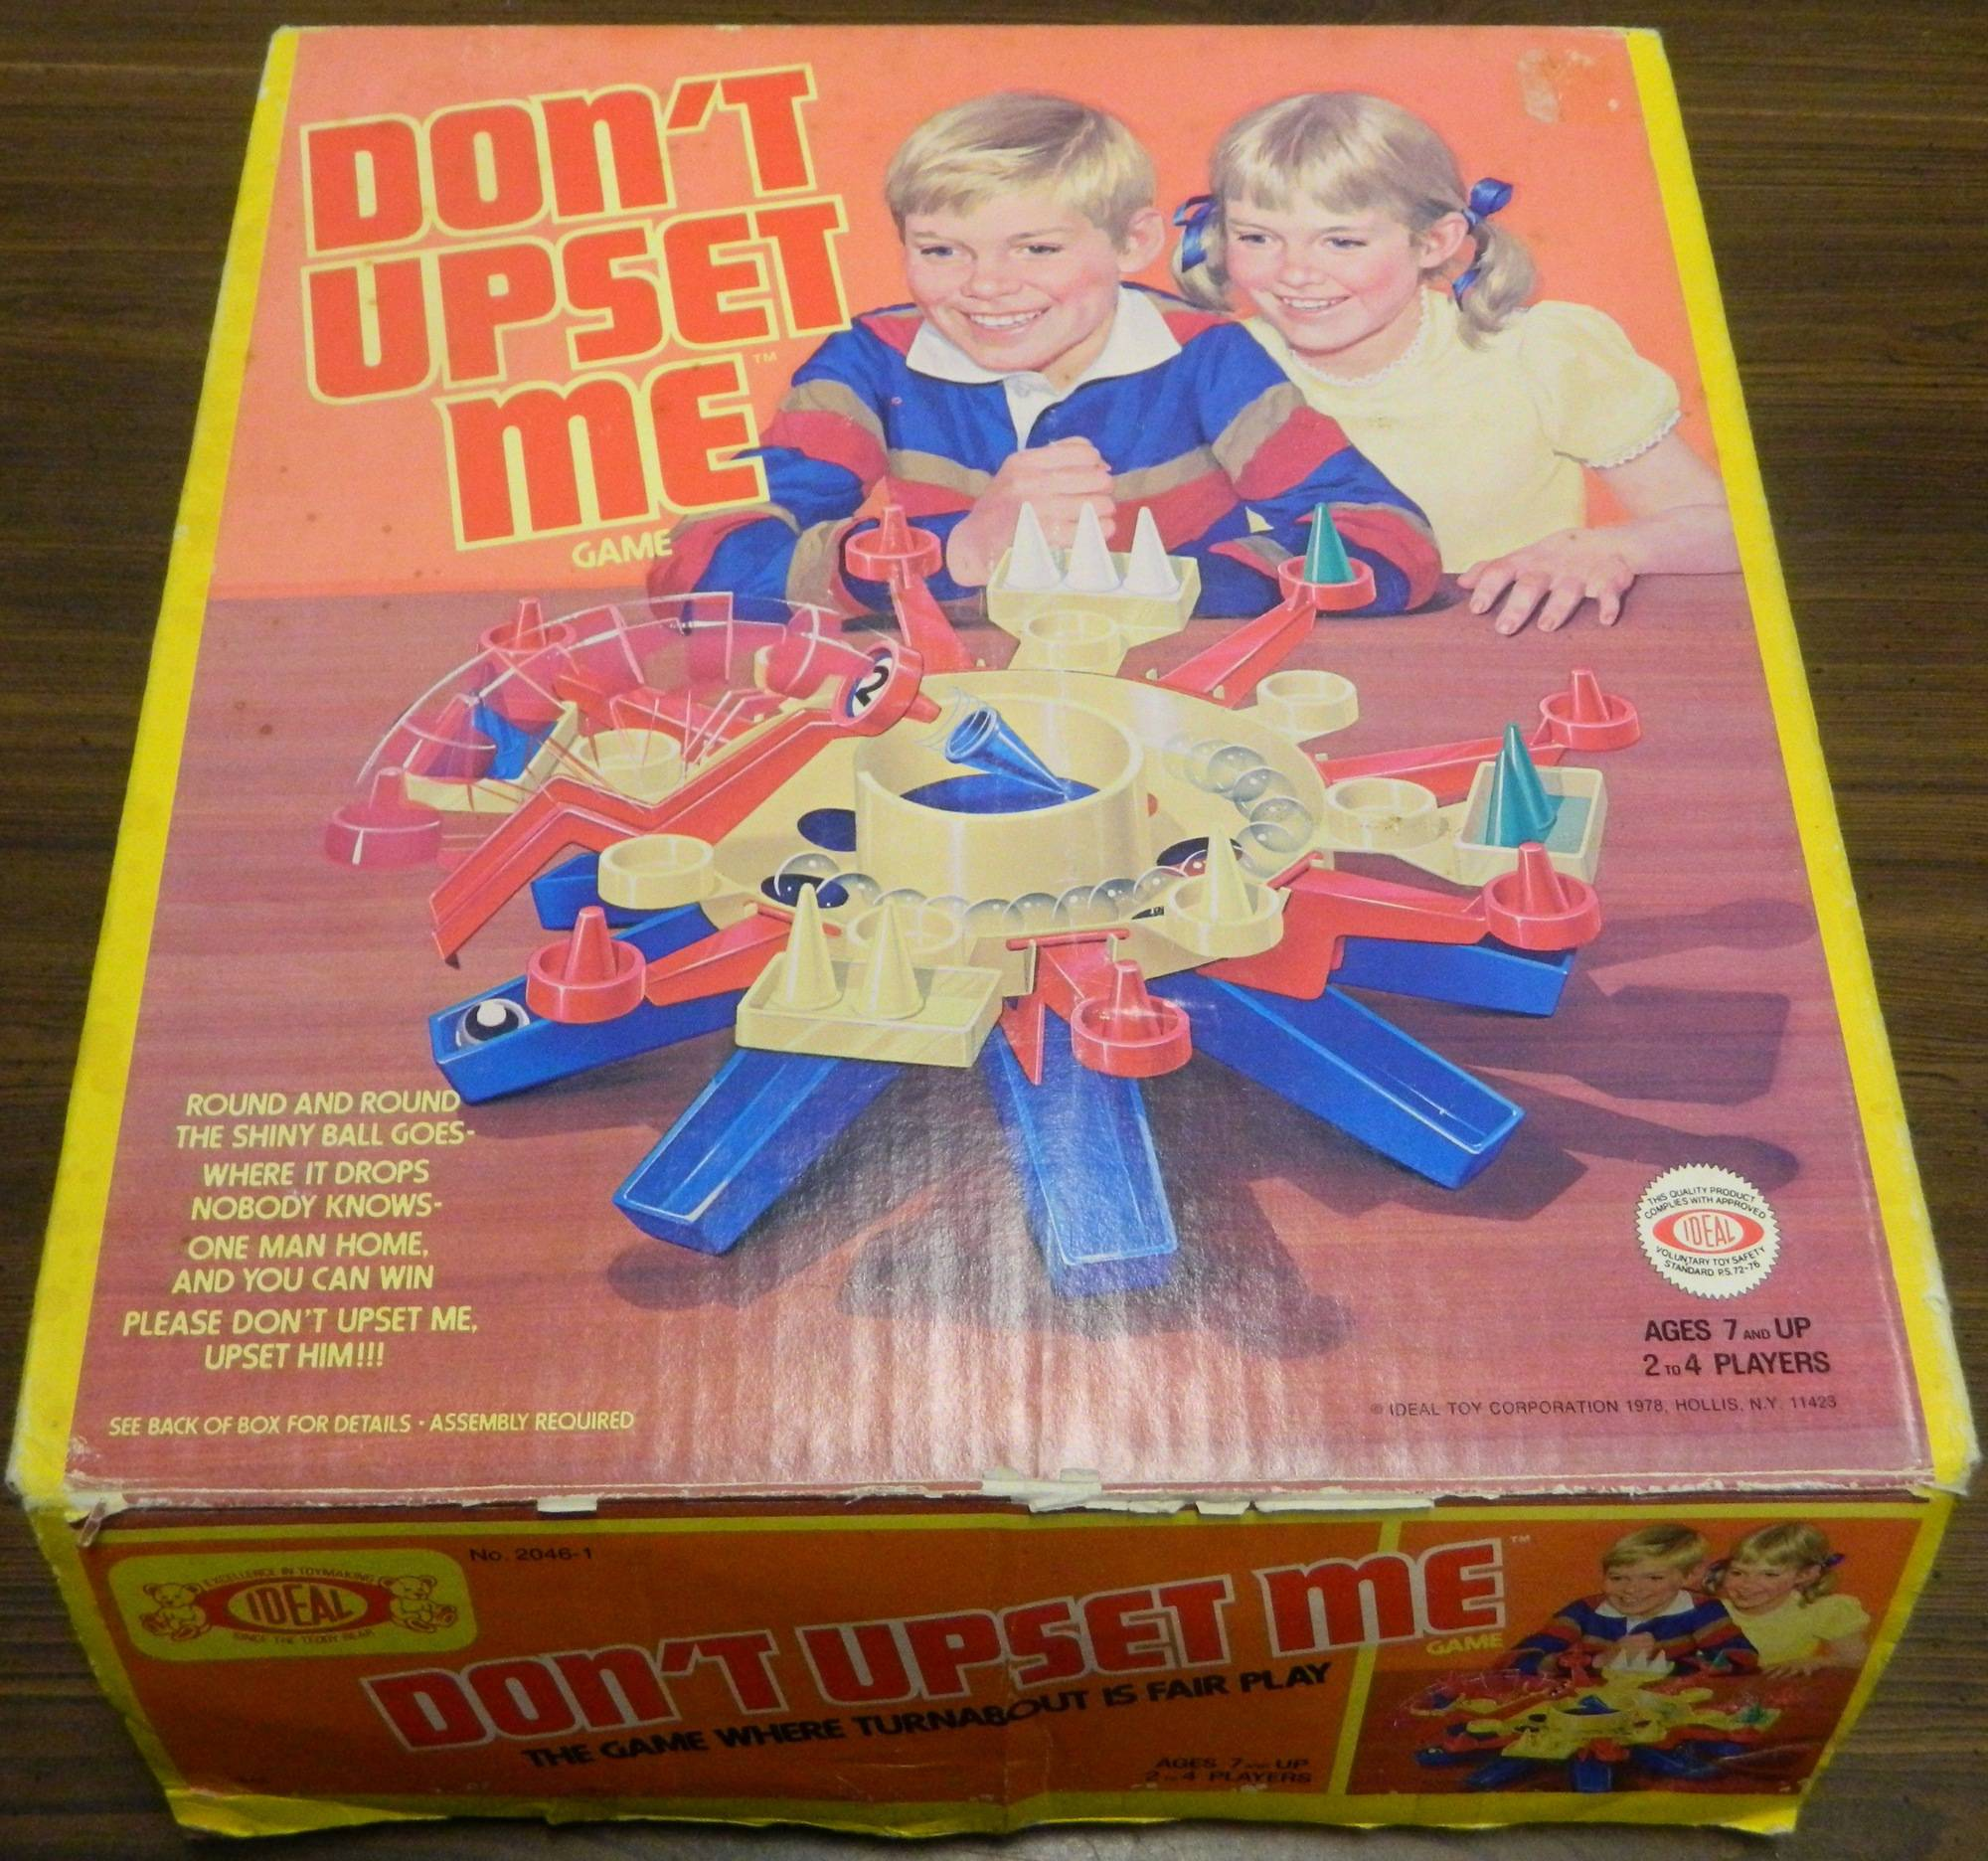 Box for Don't Upset Me